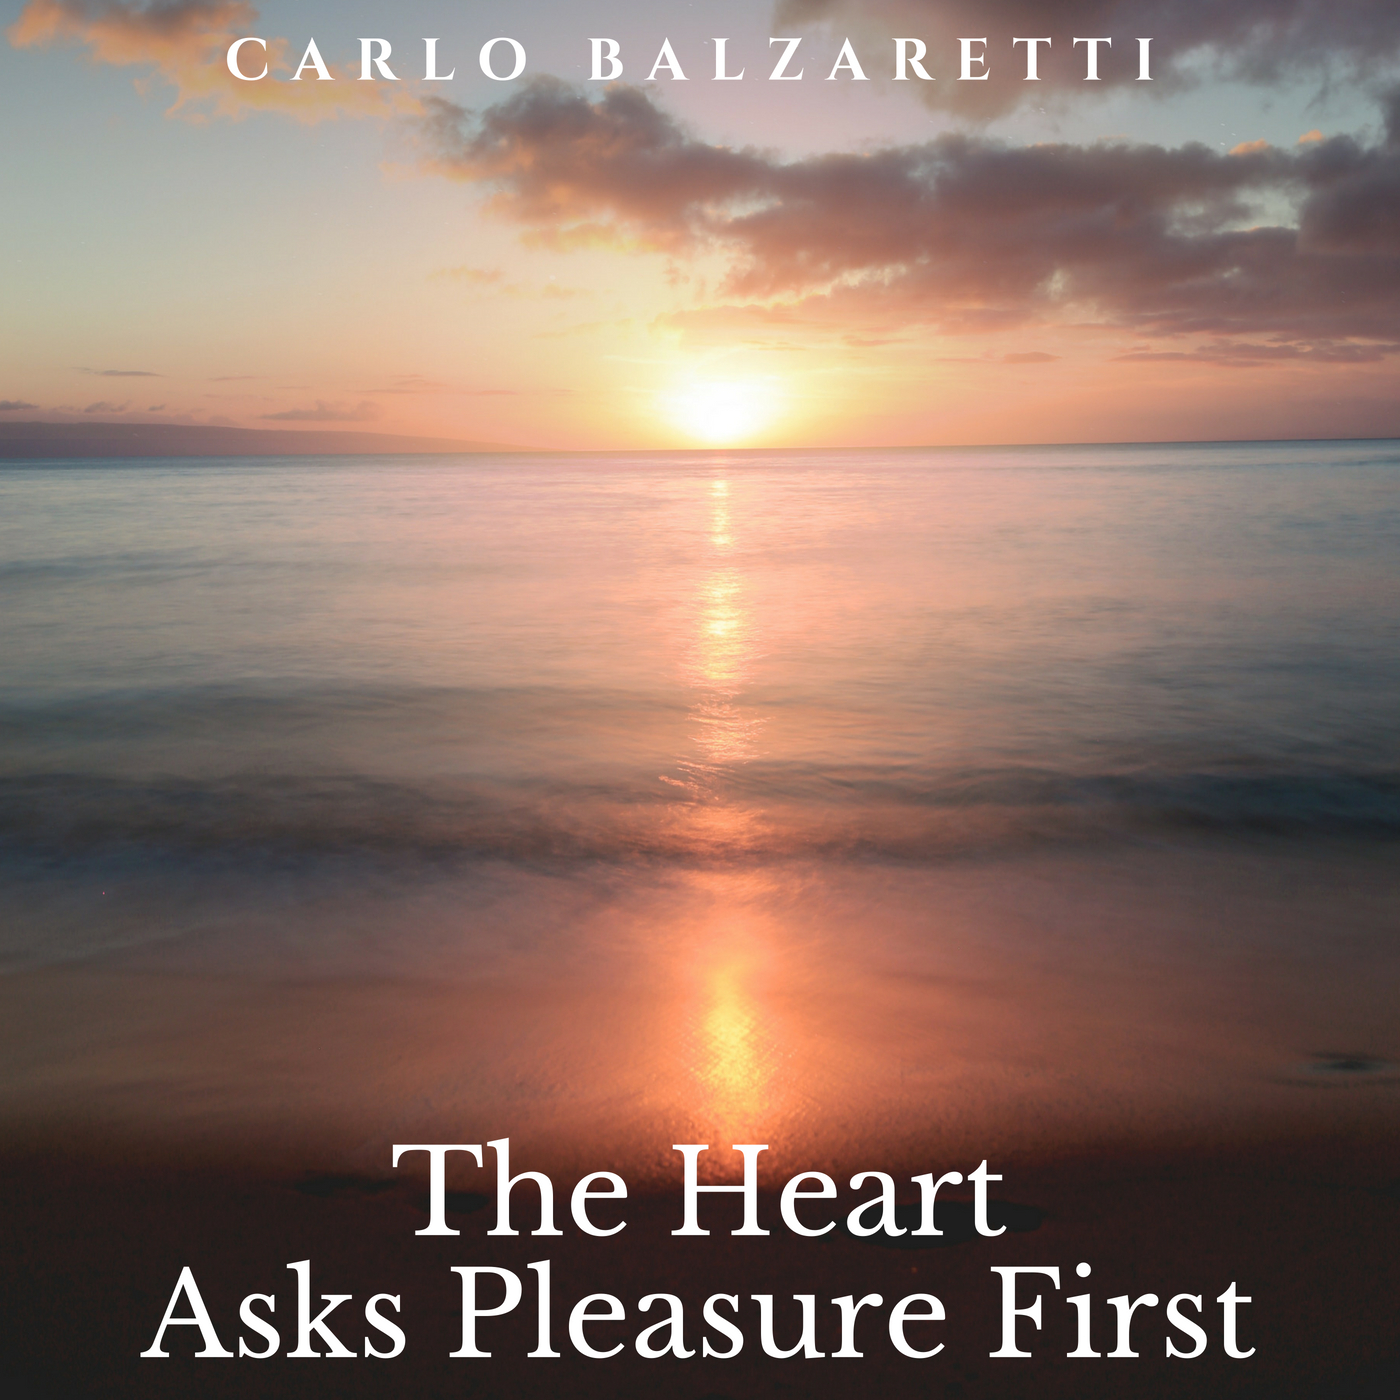 The Heart Asks Pleasure First